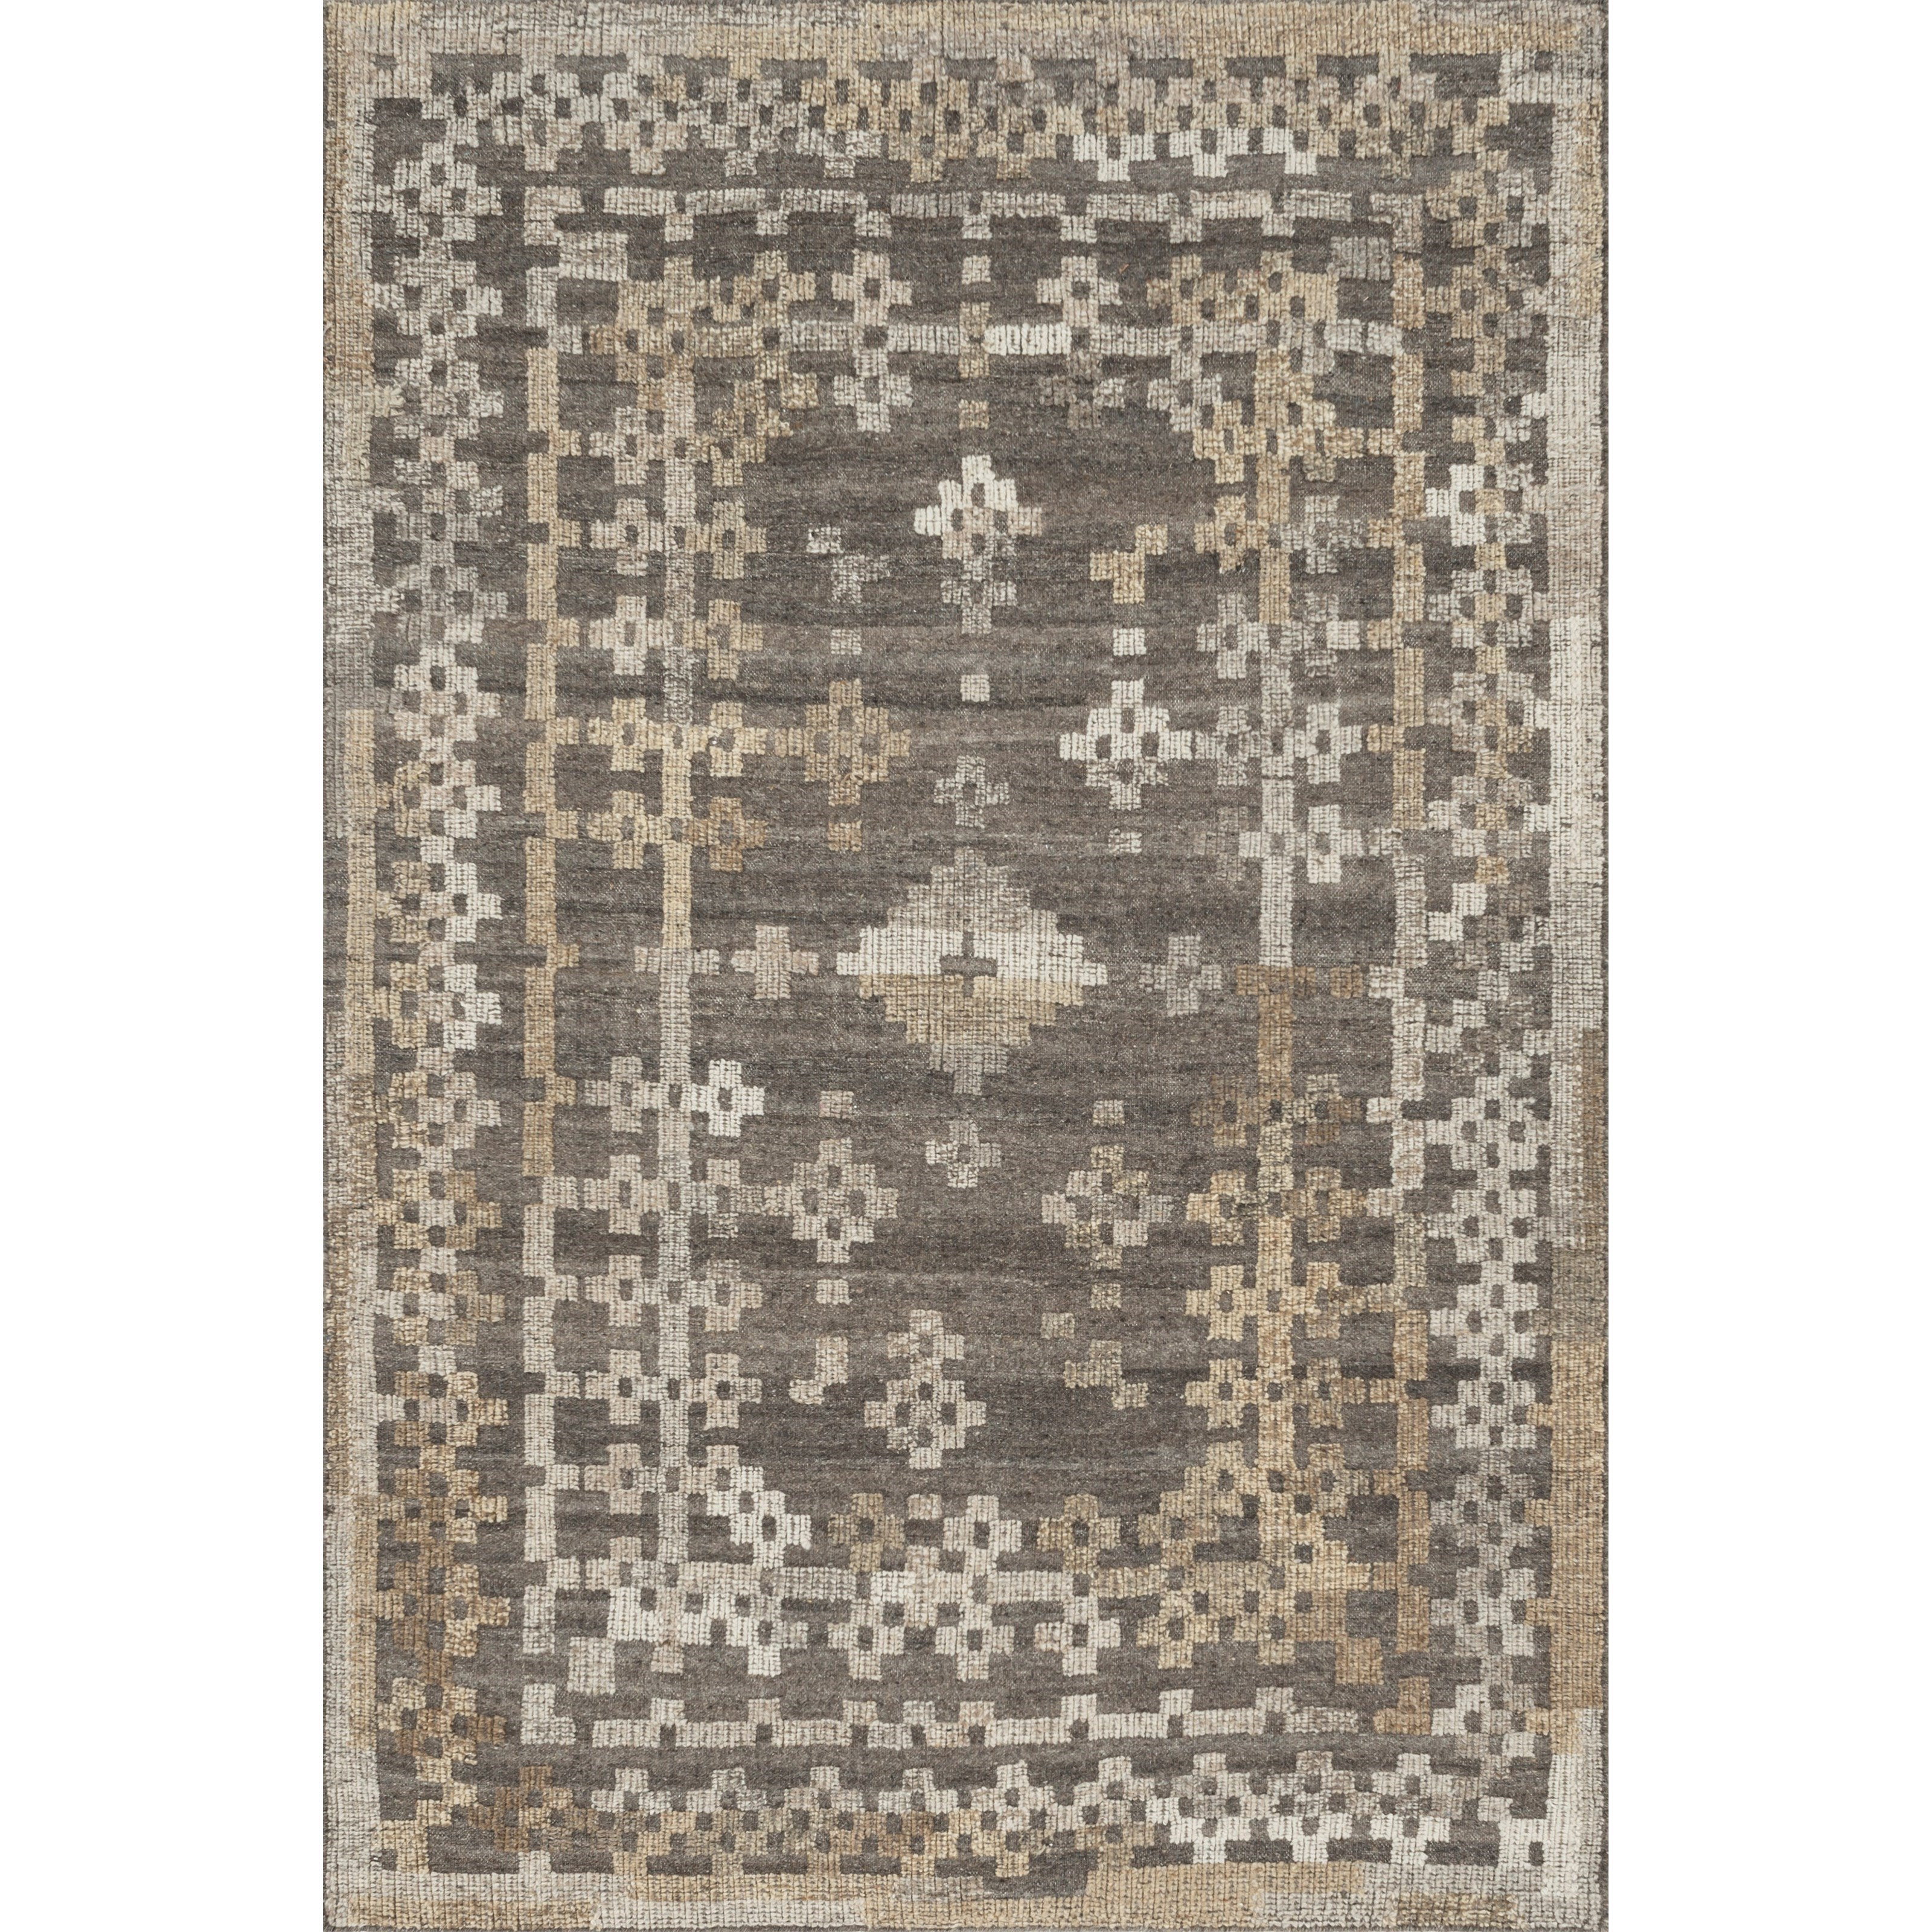 "Akina 1'6"" x 1'6""  Charcoal / Taupe Rug by Loloi Rugs at Sprintz Furniture"